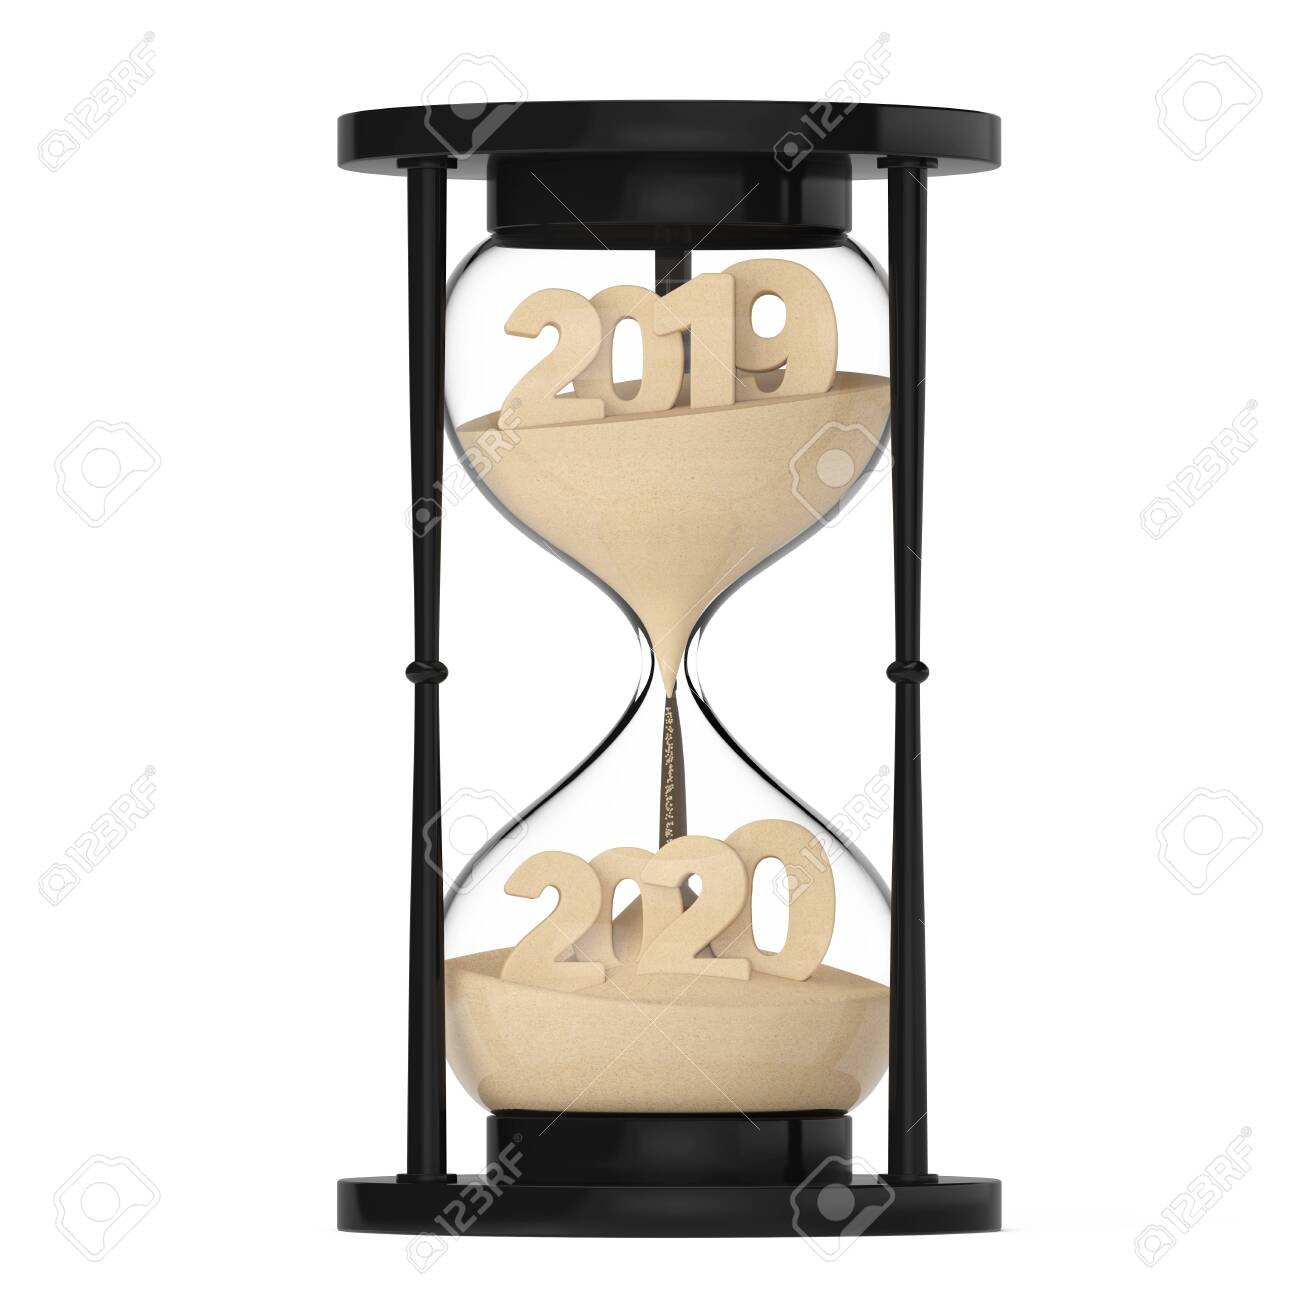 130801671-new-2020-year-concept-sand-falling-in-hourglass-taking-the-shape-from-2019-to-2020-year-on-a-white-b